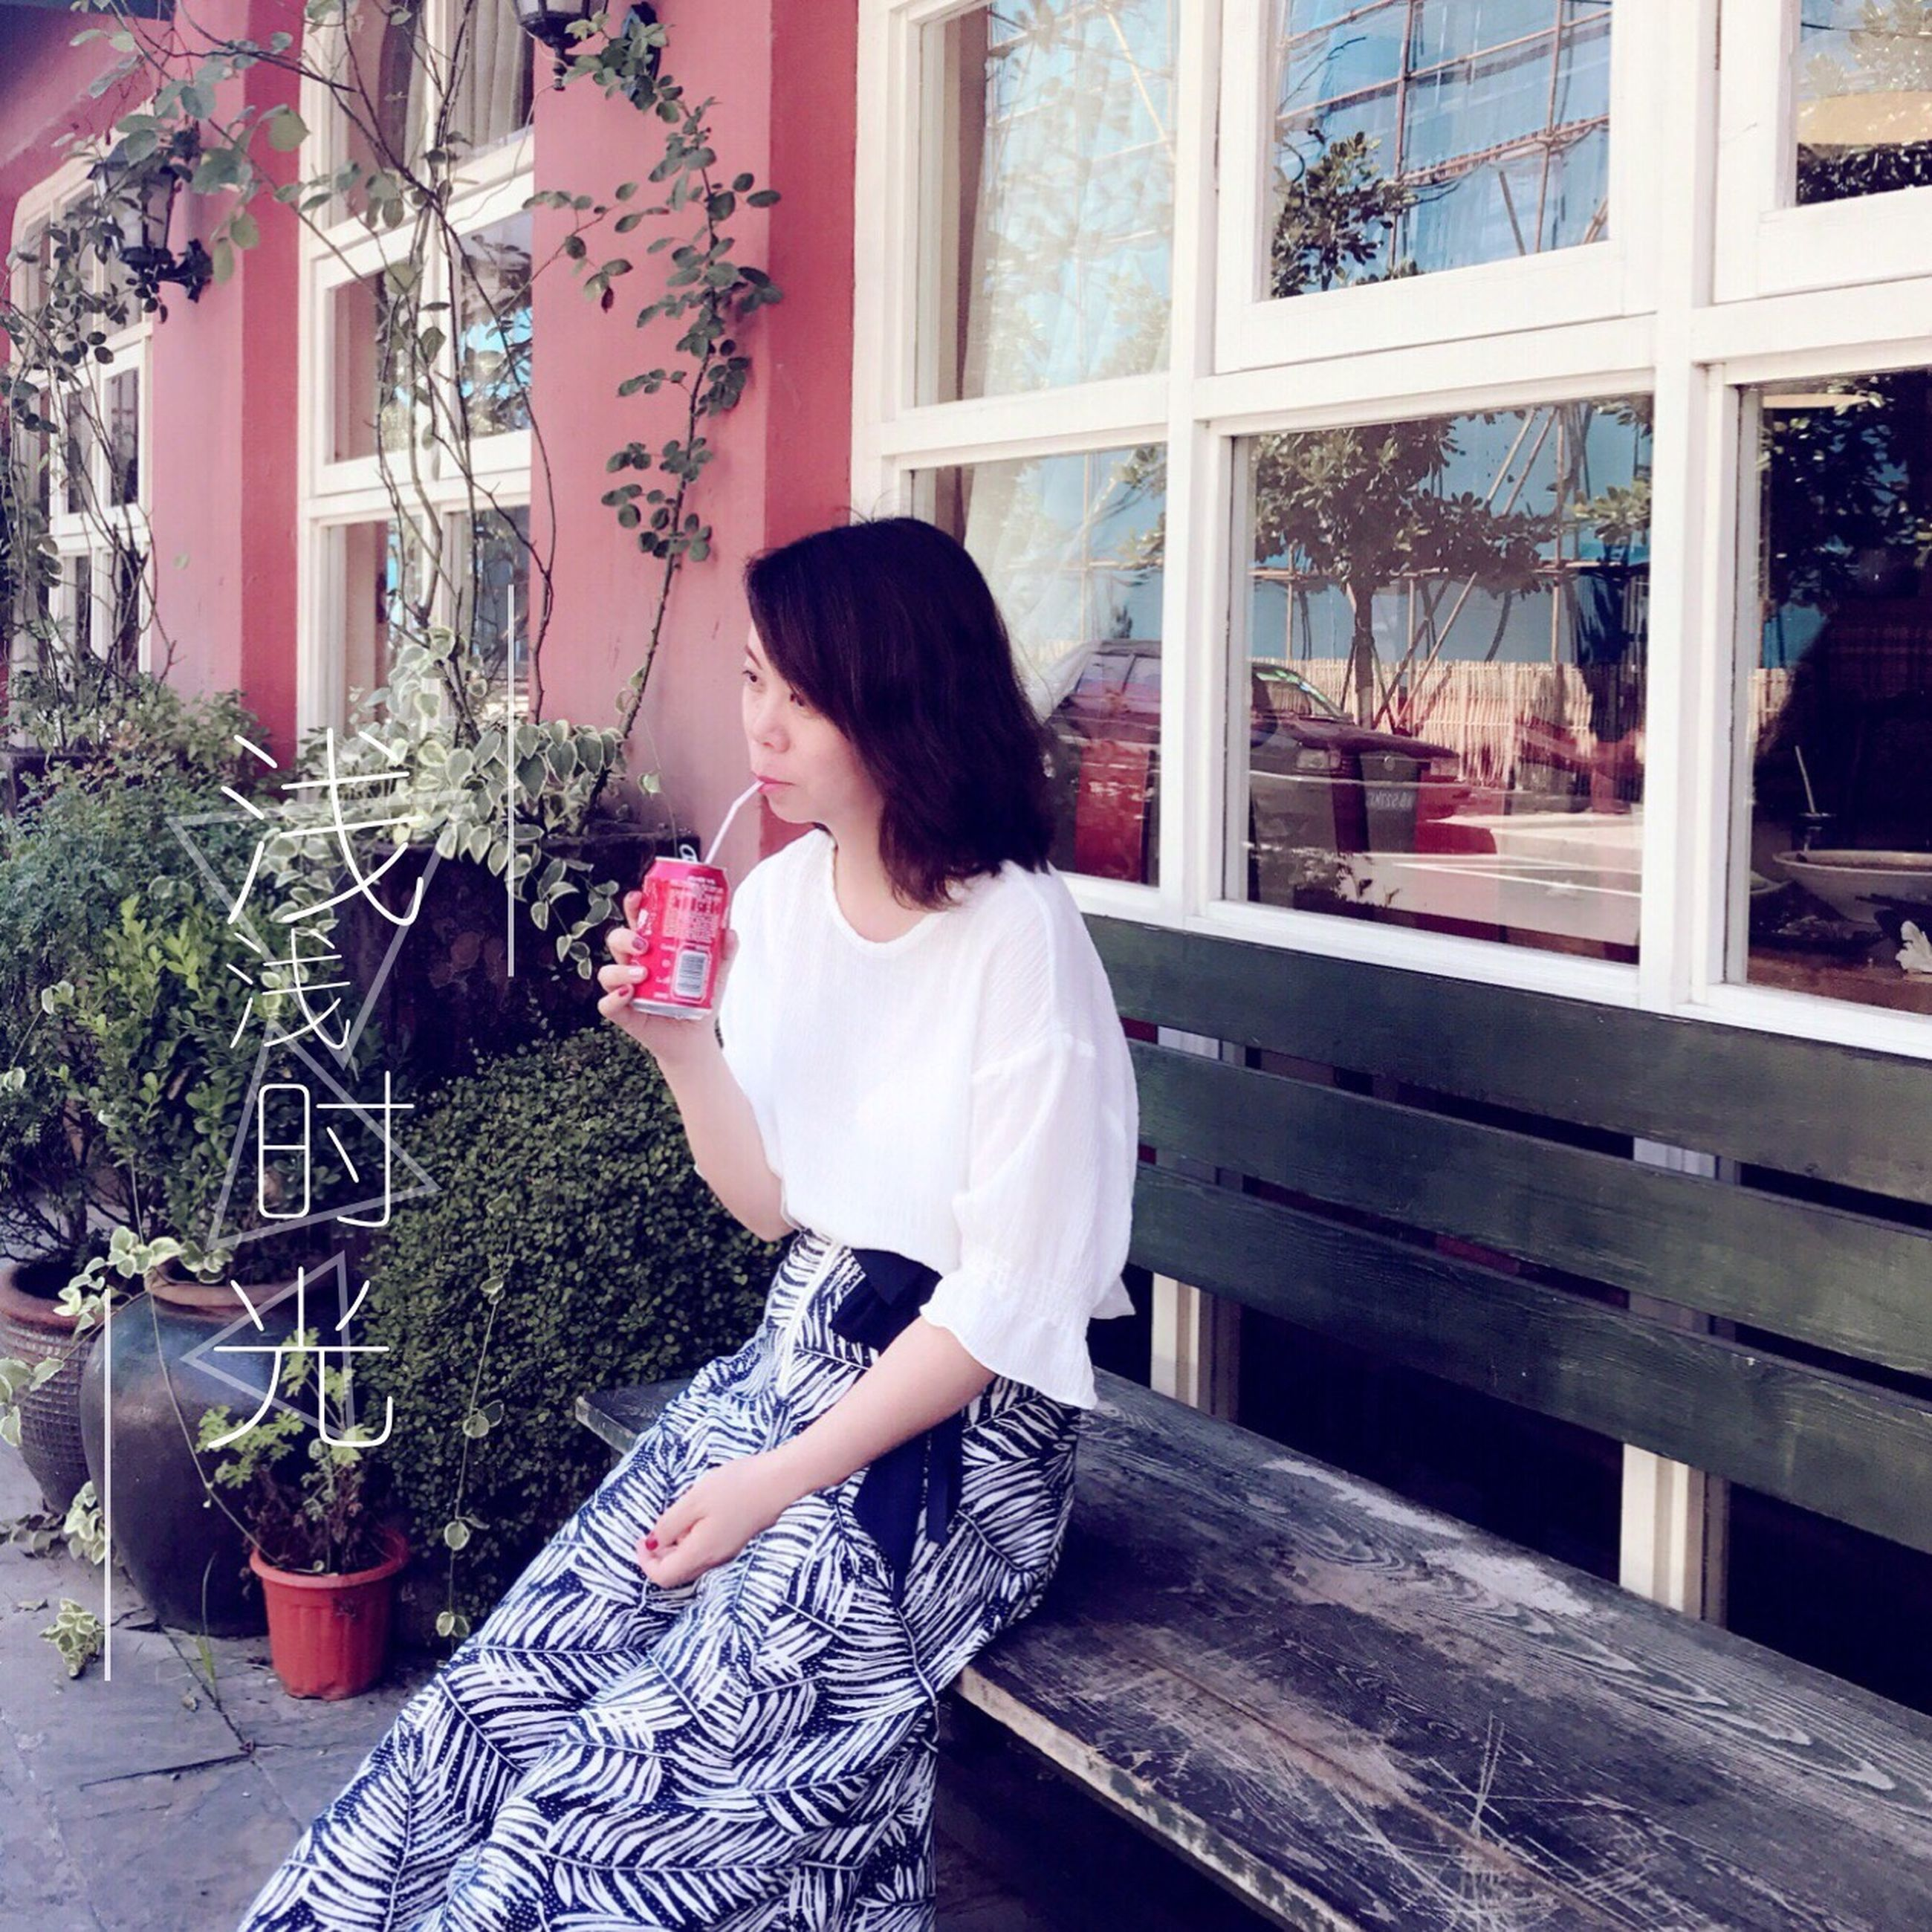 real people, one person, casual clothing, window, leisure activity, lifestyles, sitting, day, young adult, young women, indoors, full length, standing, building exterior, tree, architecture